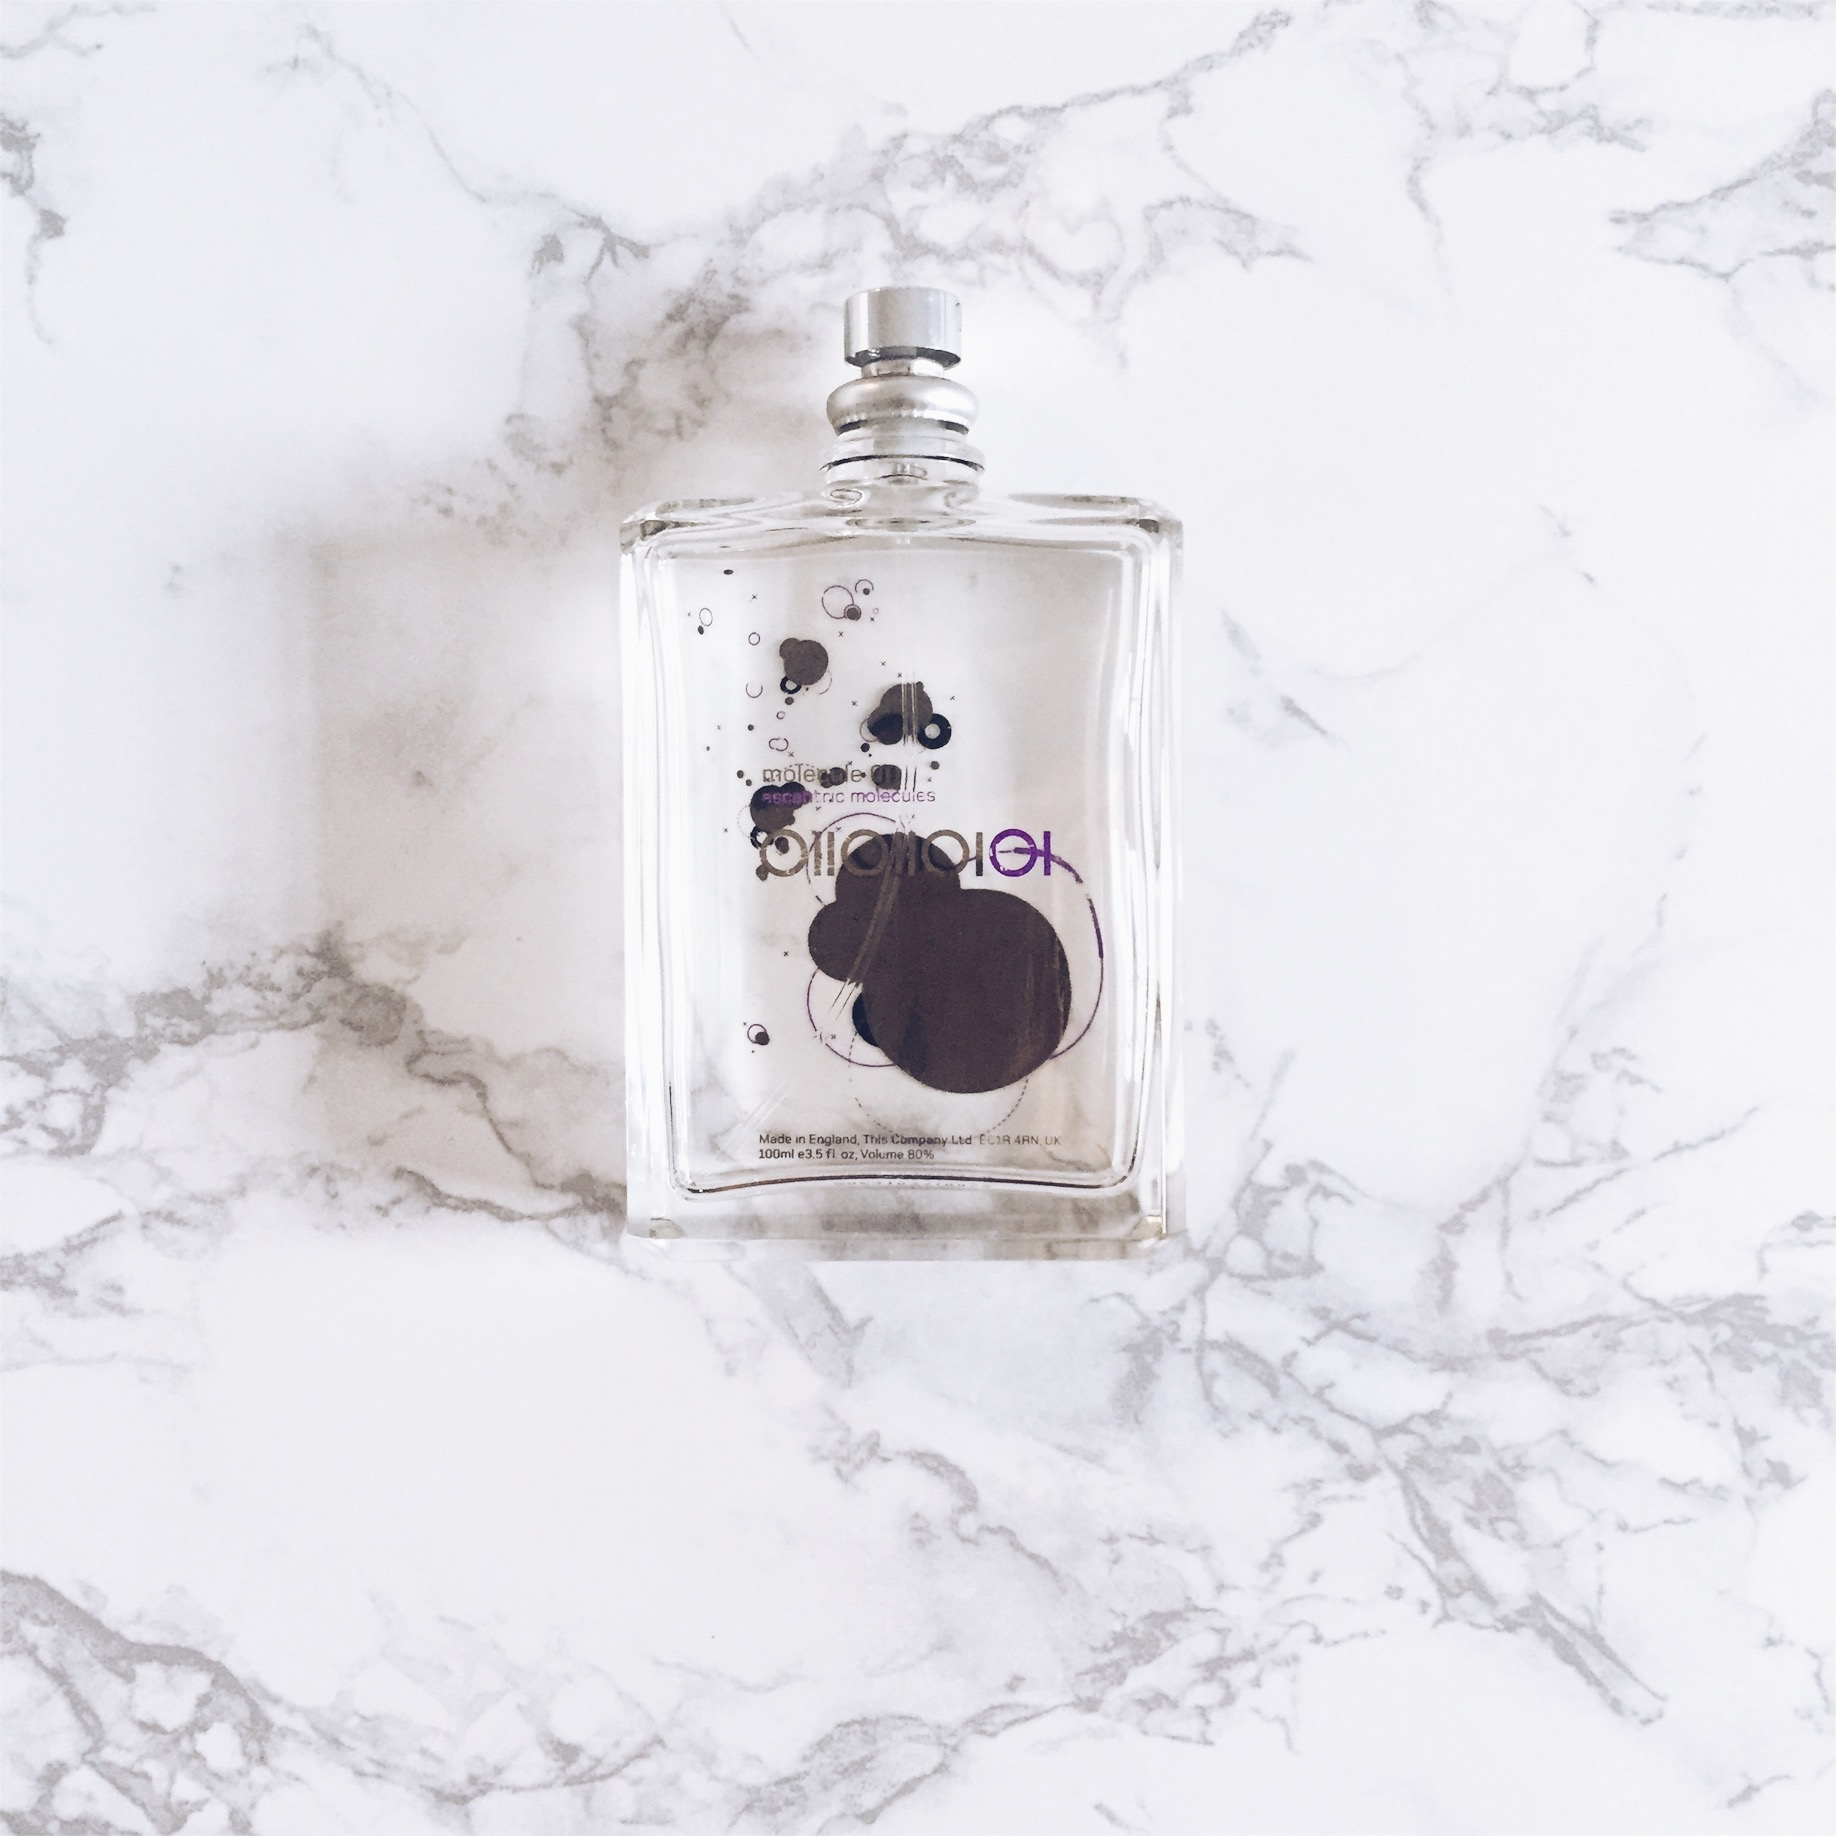 Escentric Molecules – Molecule 01 Perfume Review